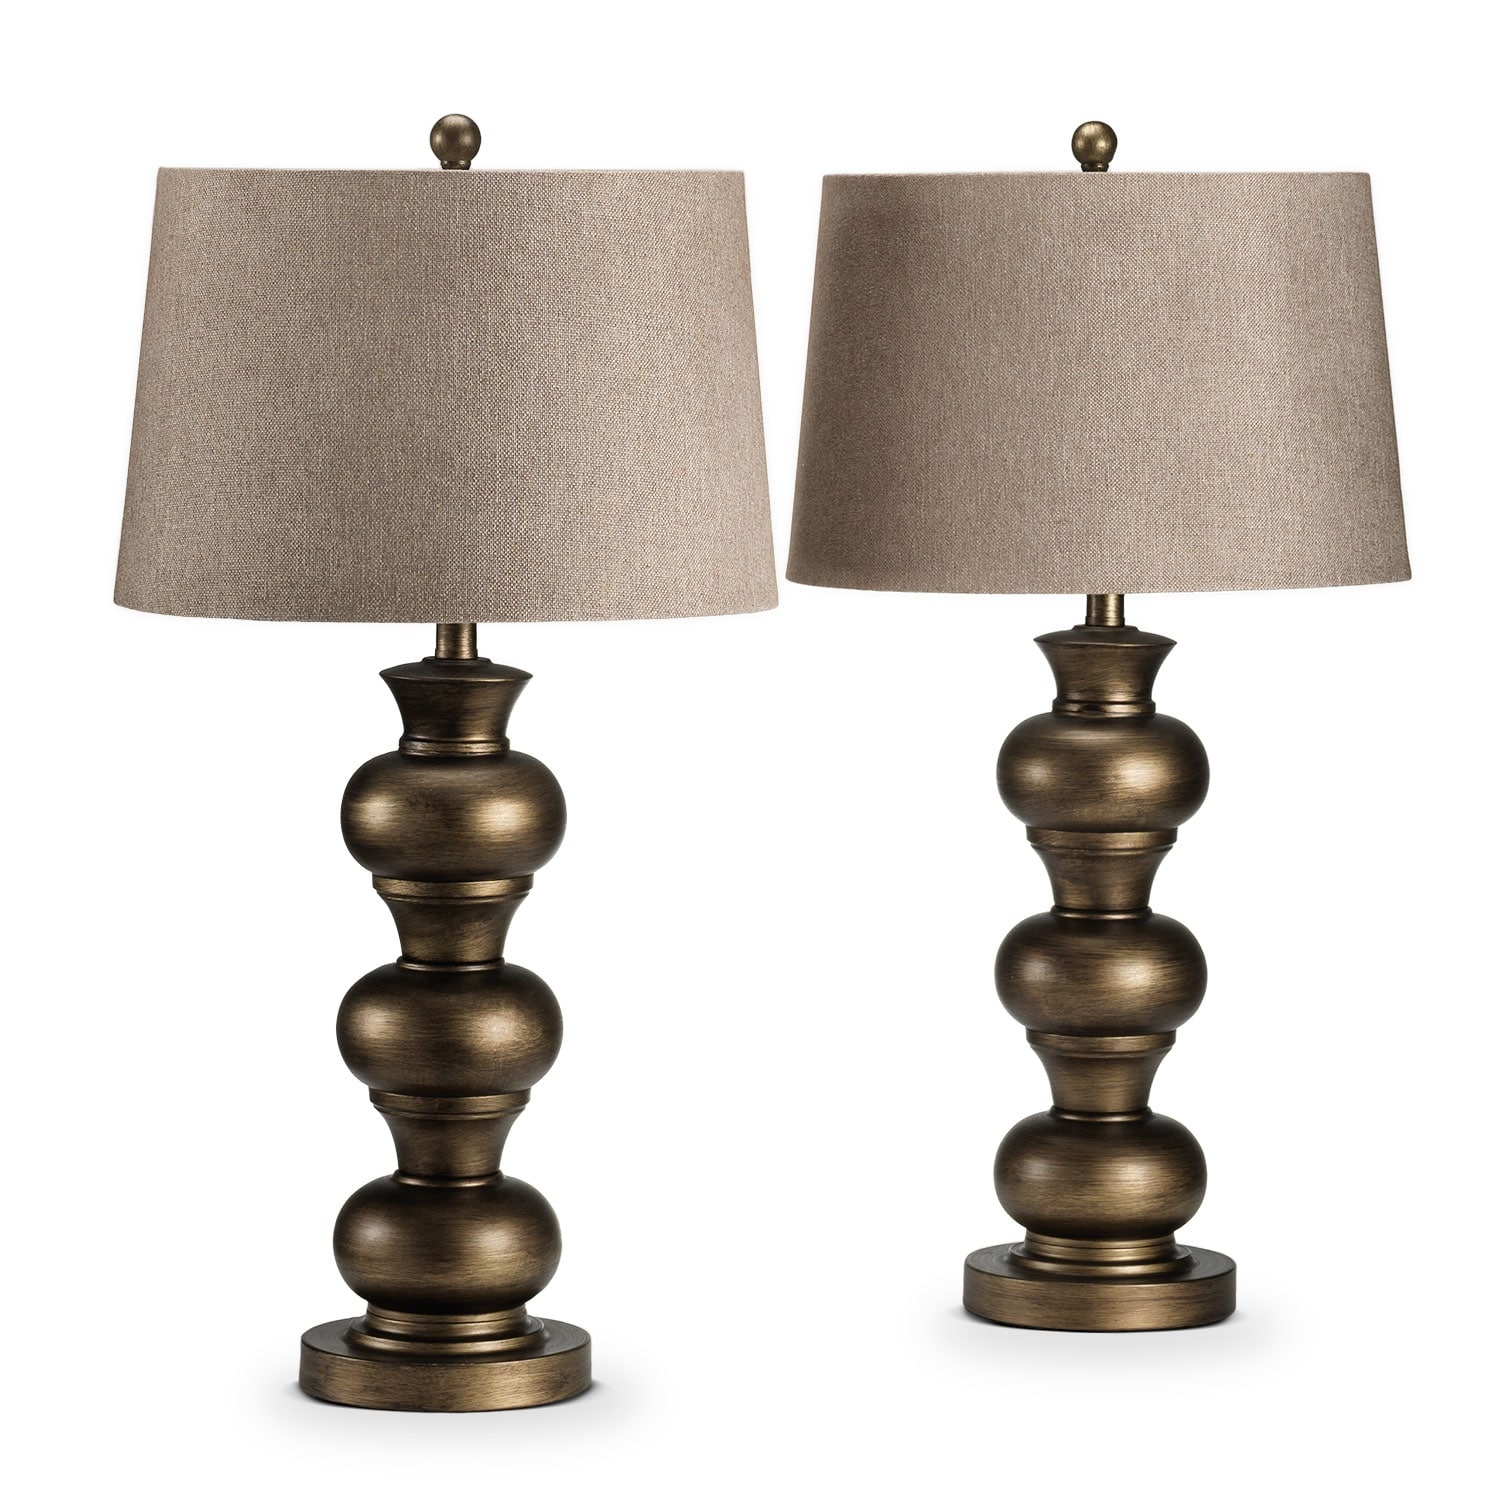 Cuzco 2-Pack Table Lamps